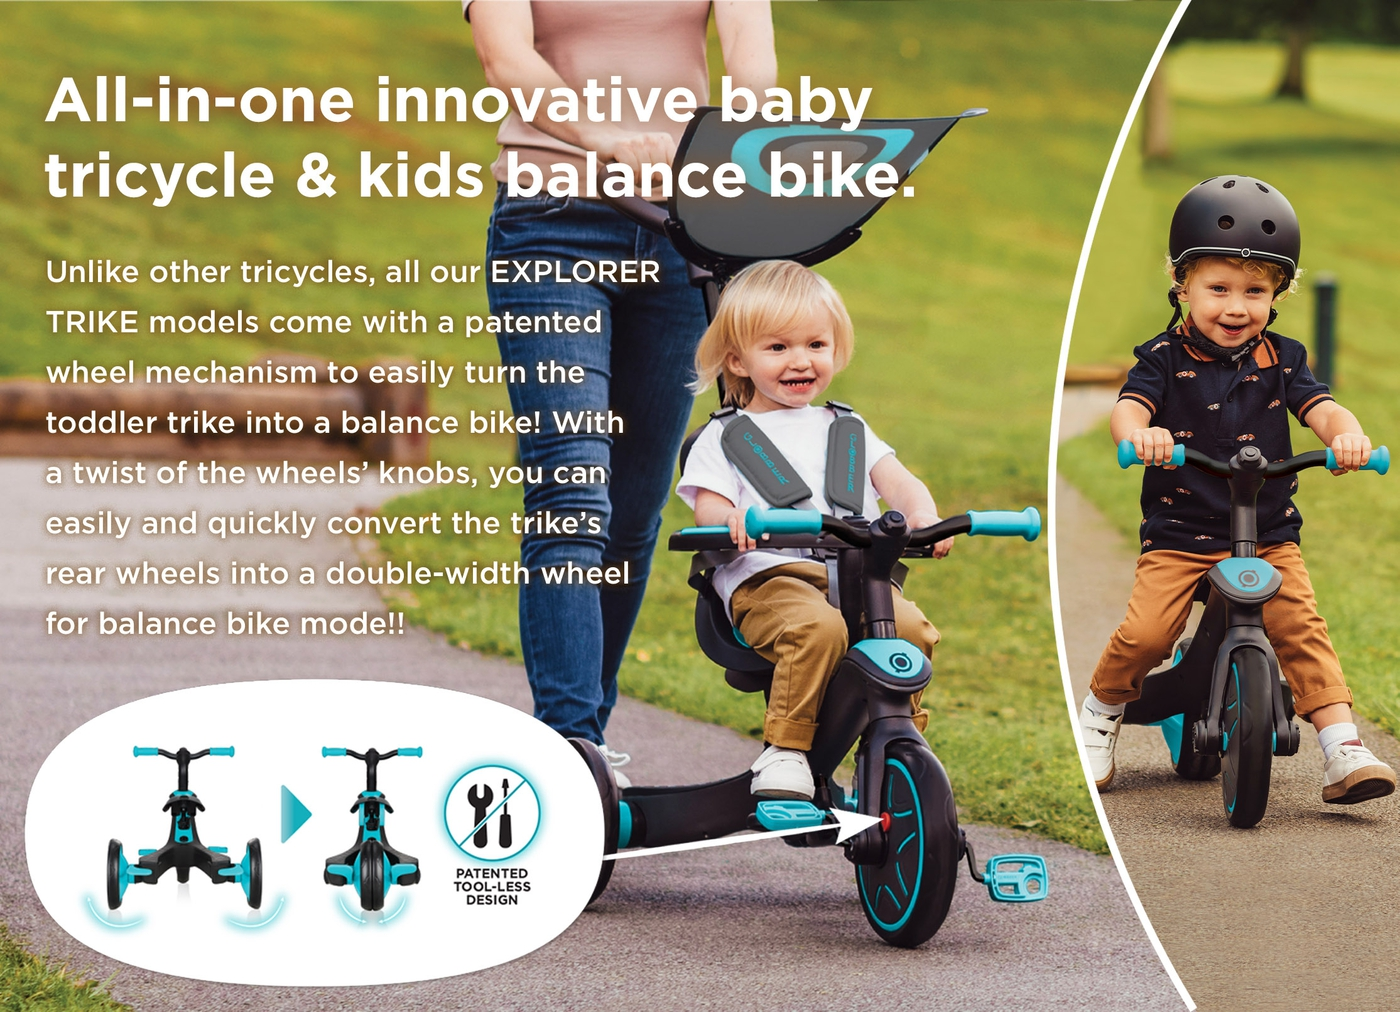 EXPLORER-TRIKE-innovative-baby-tricycle-and-kids-balance-bike-with-patented-wheel-mechanism